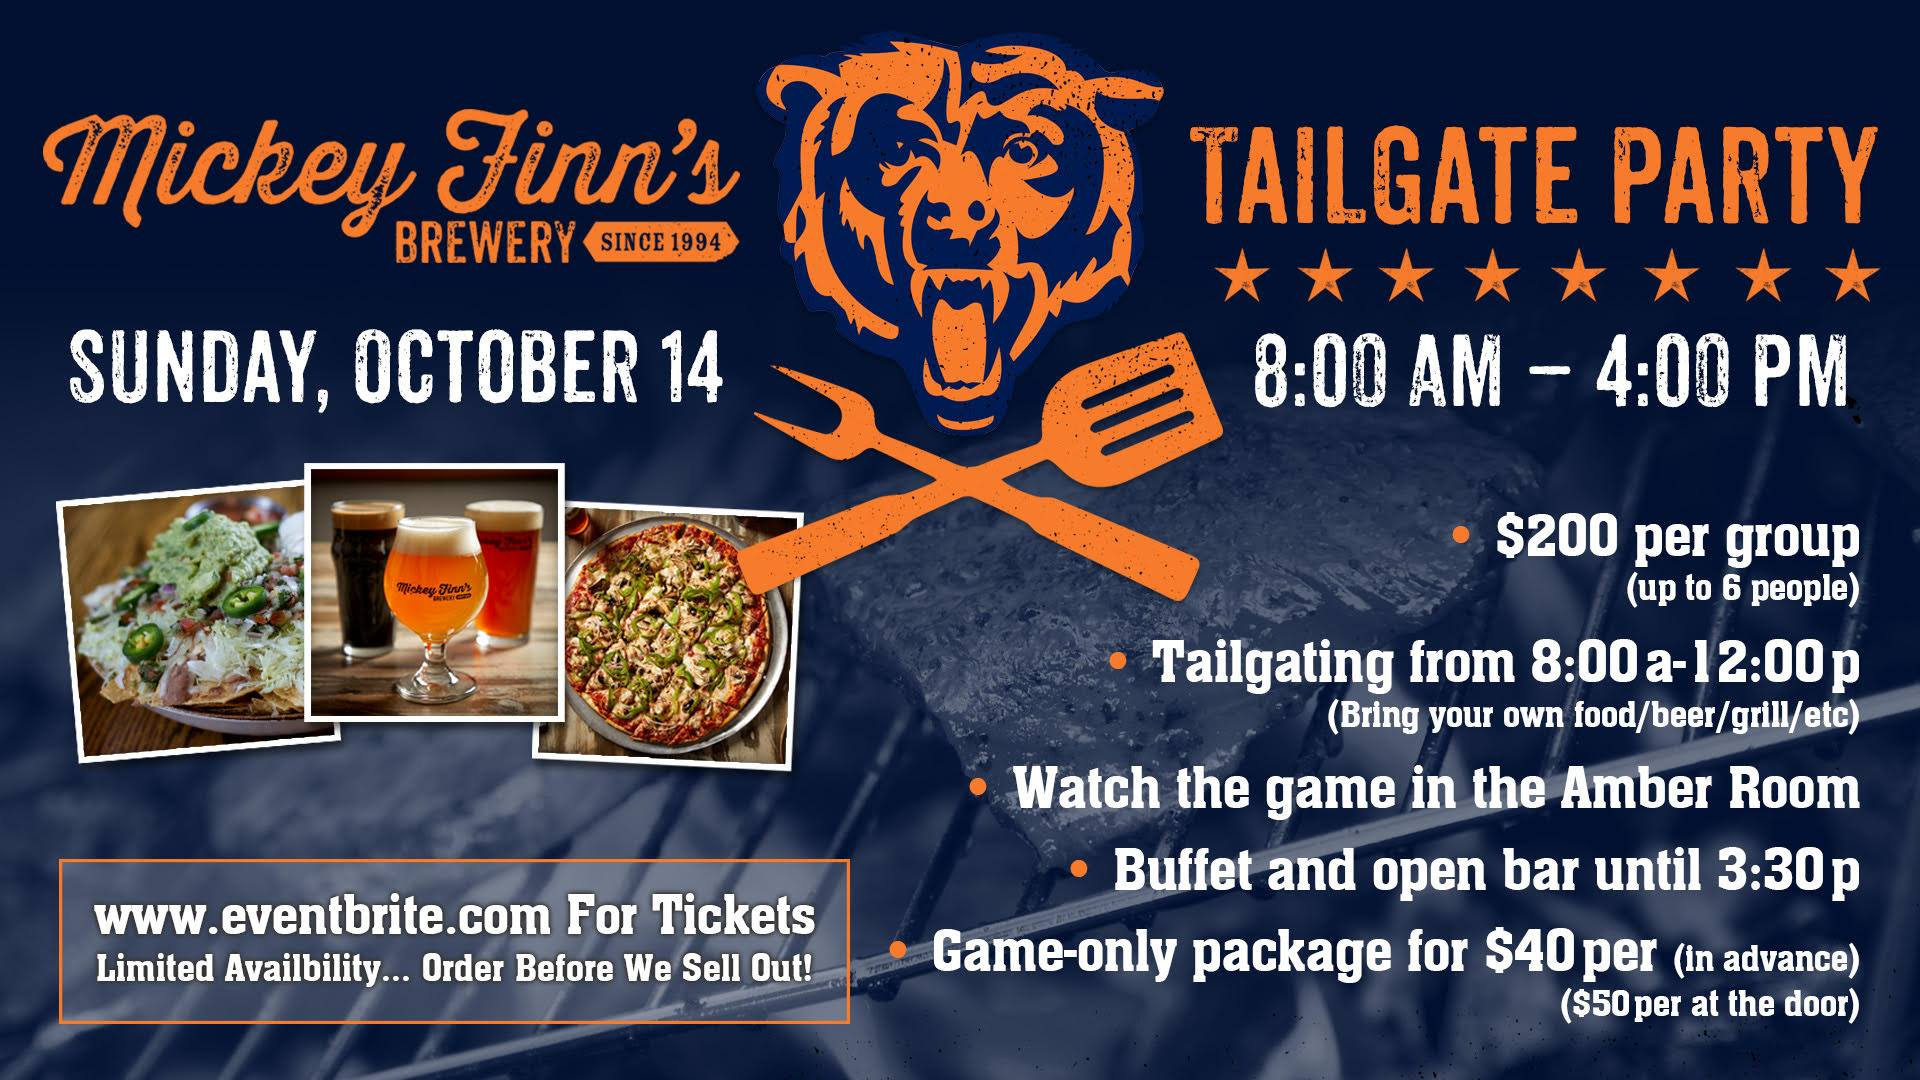 Bear's Tailgate Party